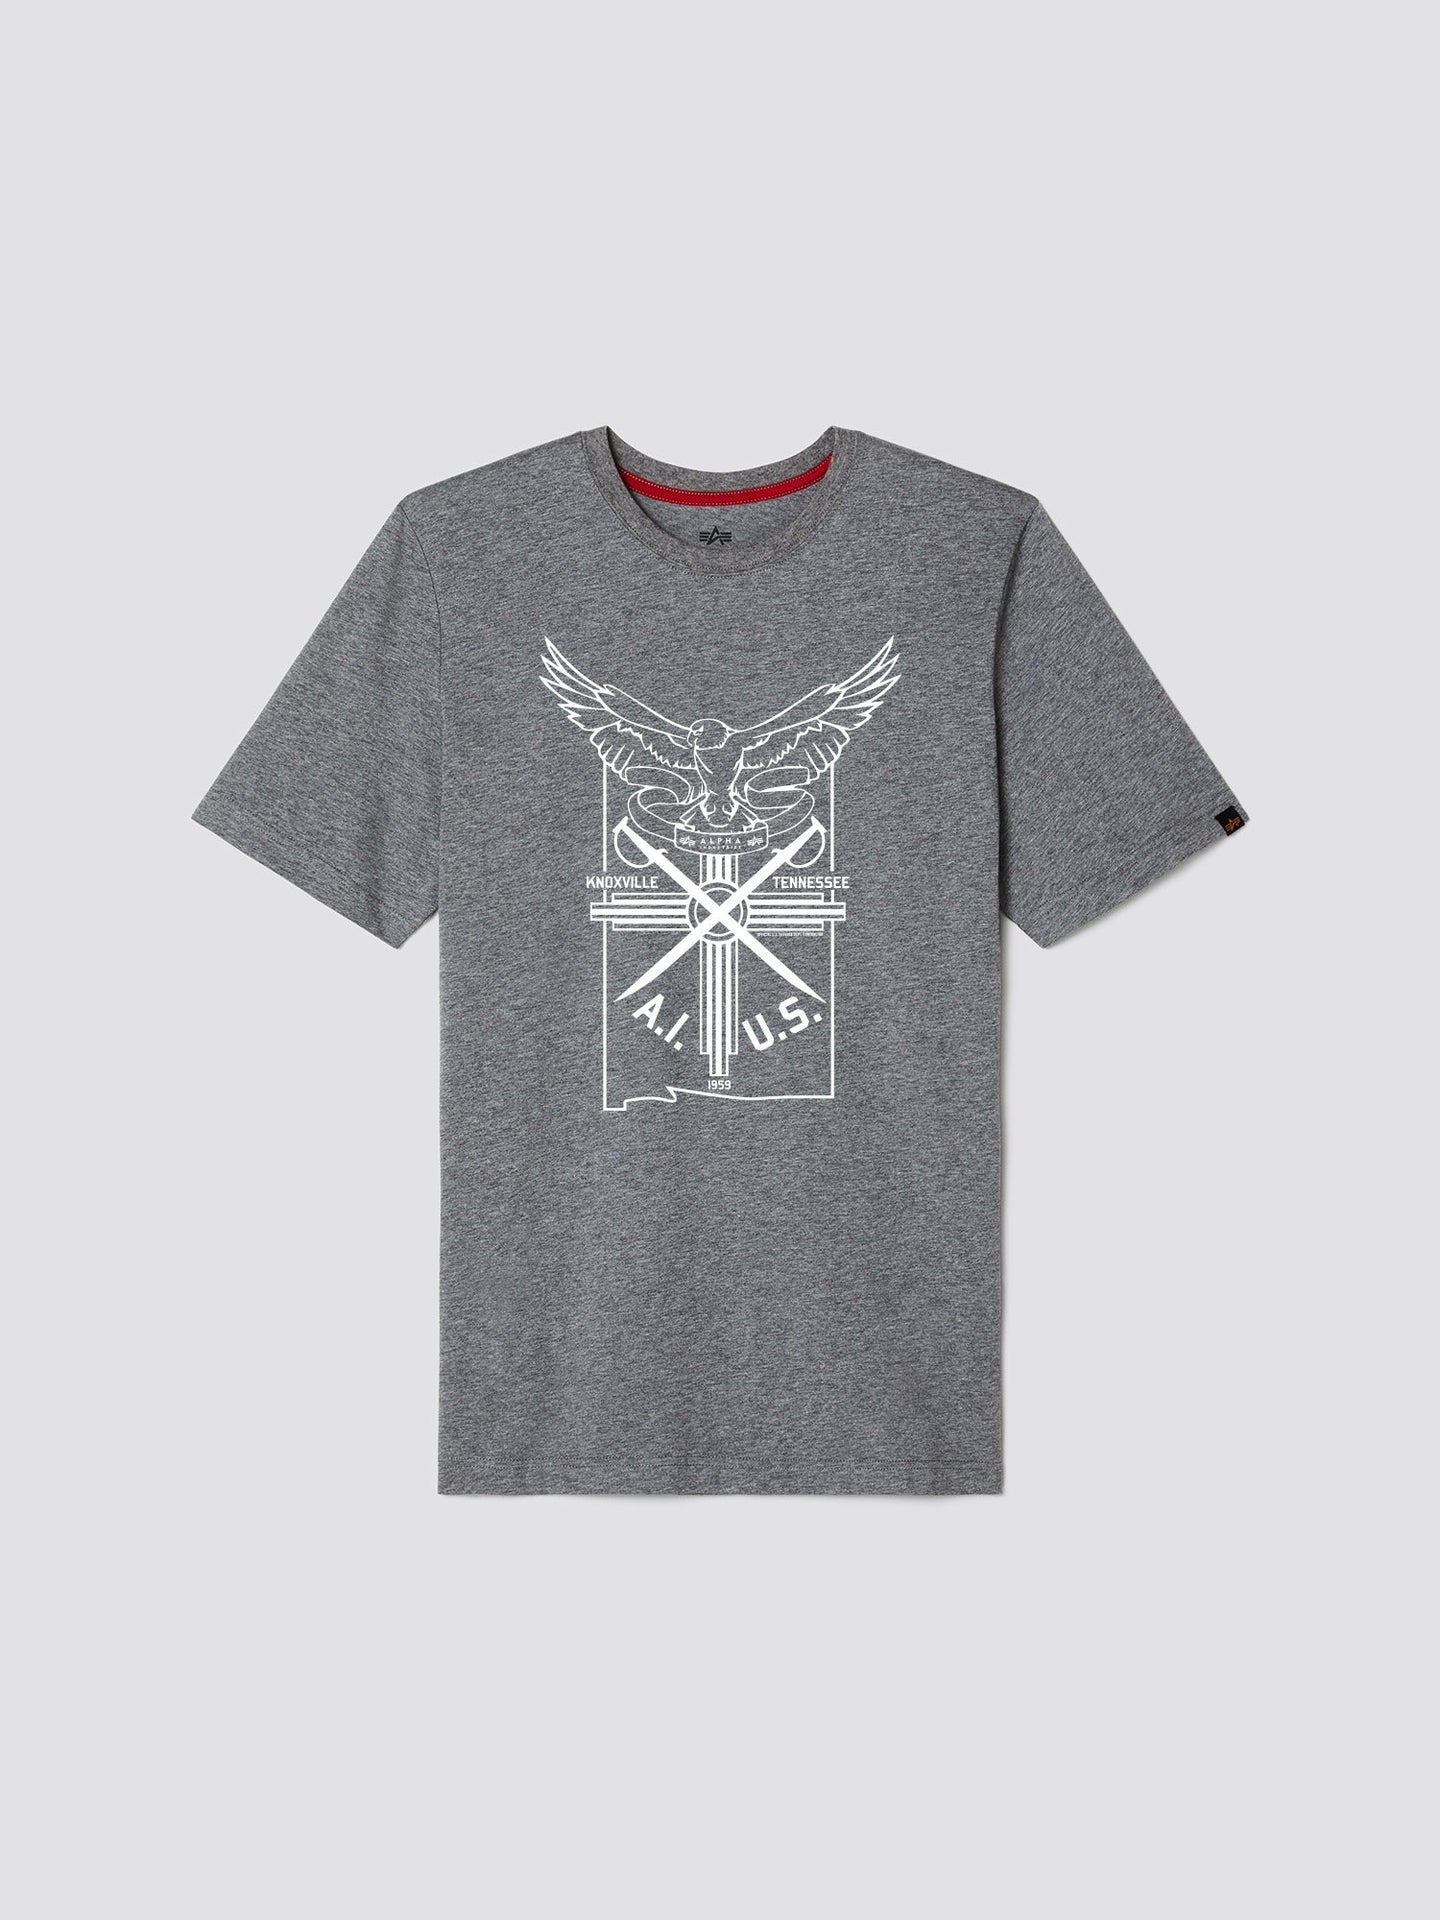 EXCLUSIVE EAGLE CREST TEE TOP Alpha Industries, Inc. MEDIUM CHARCOAL HEATHER 2XL